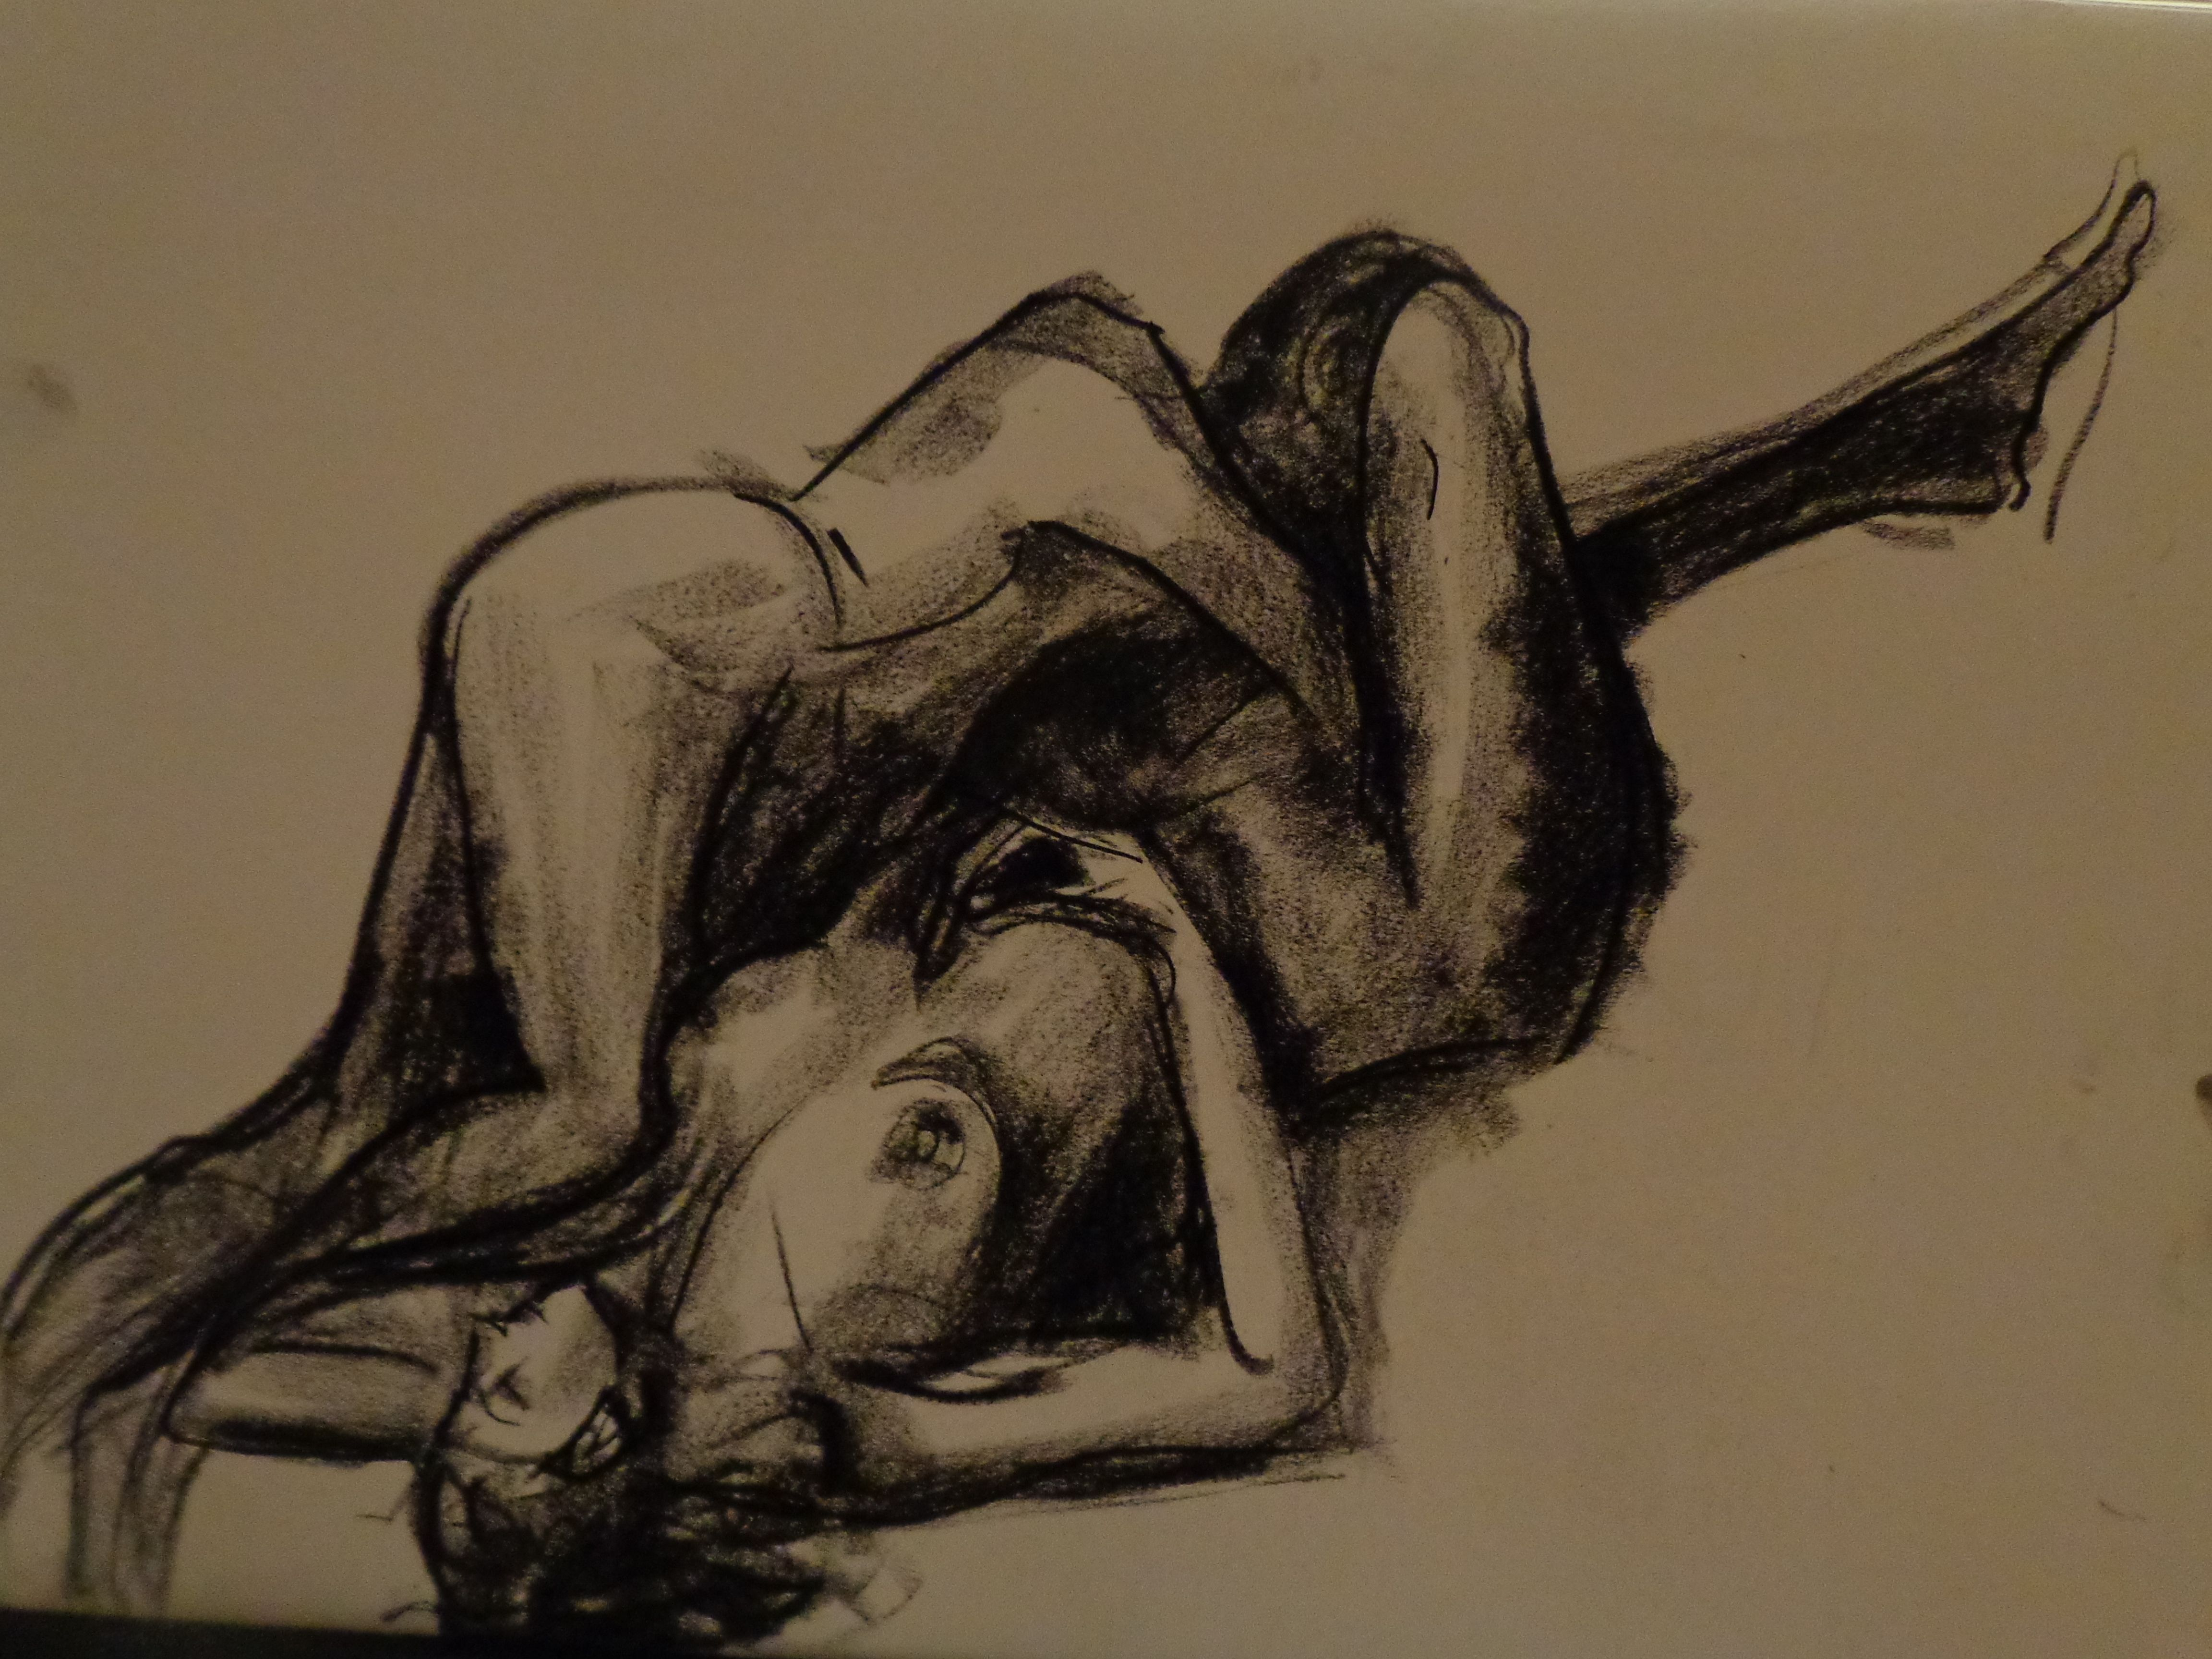 16oct17 Life Drawing Class Partnered Figure Study Chicago